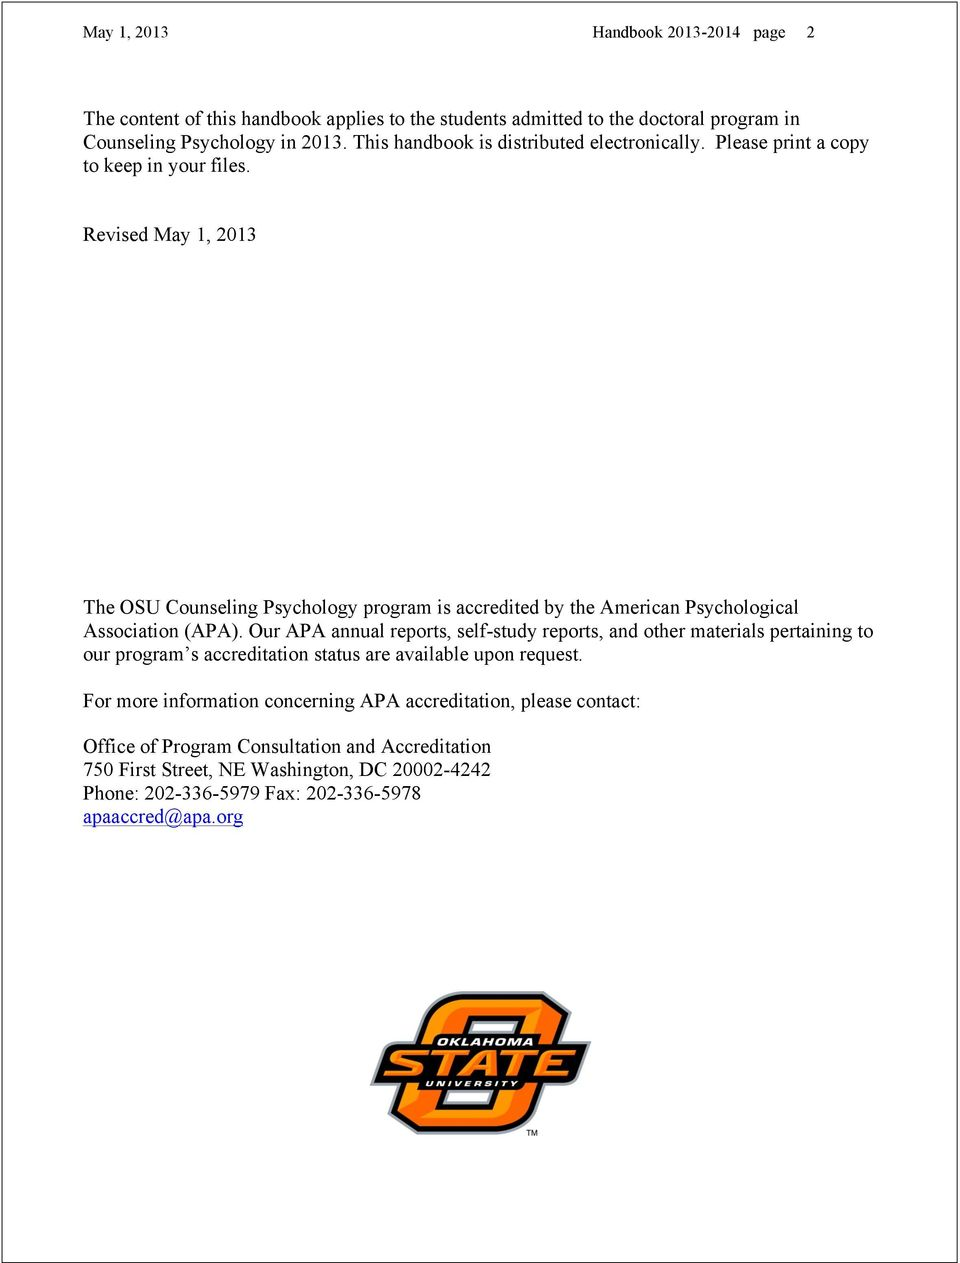 Revised May 1, 2013 The OSU Counseling Psychology program is accredited by the American Psychological Association (APA).